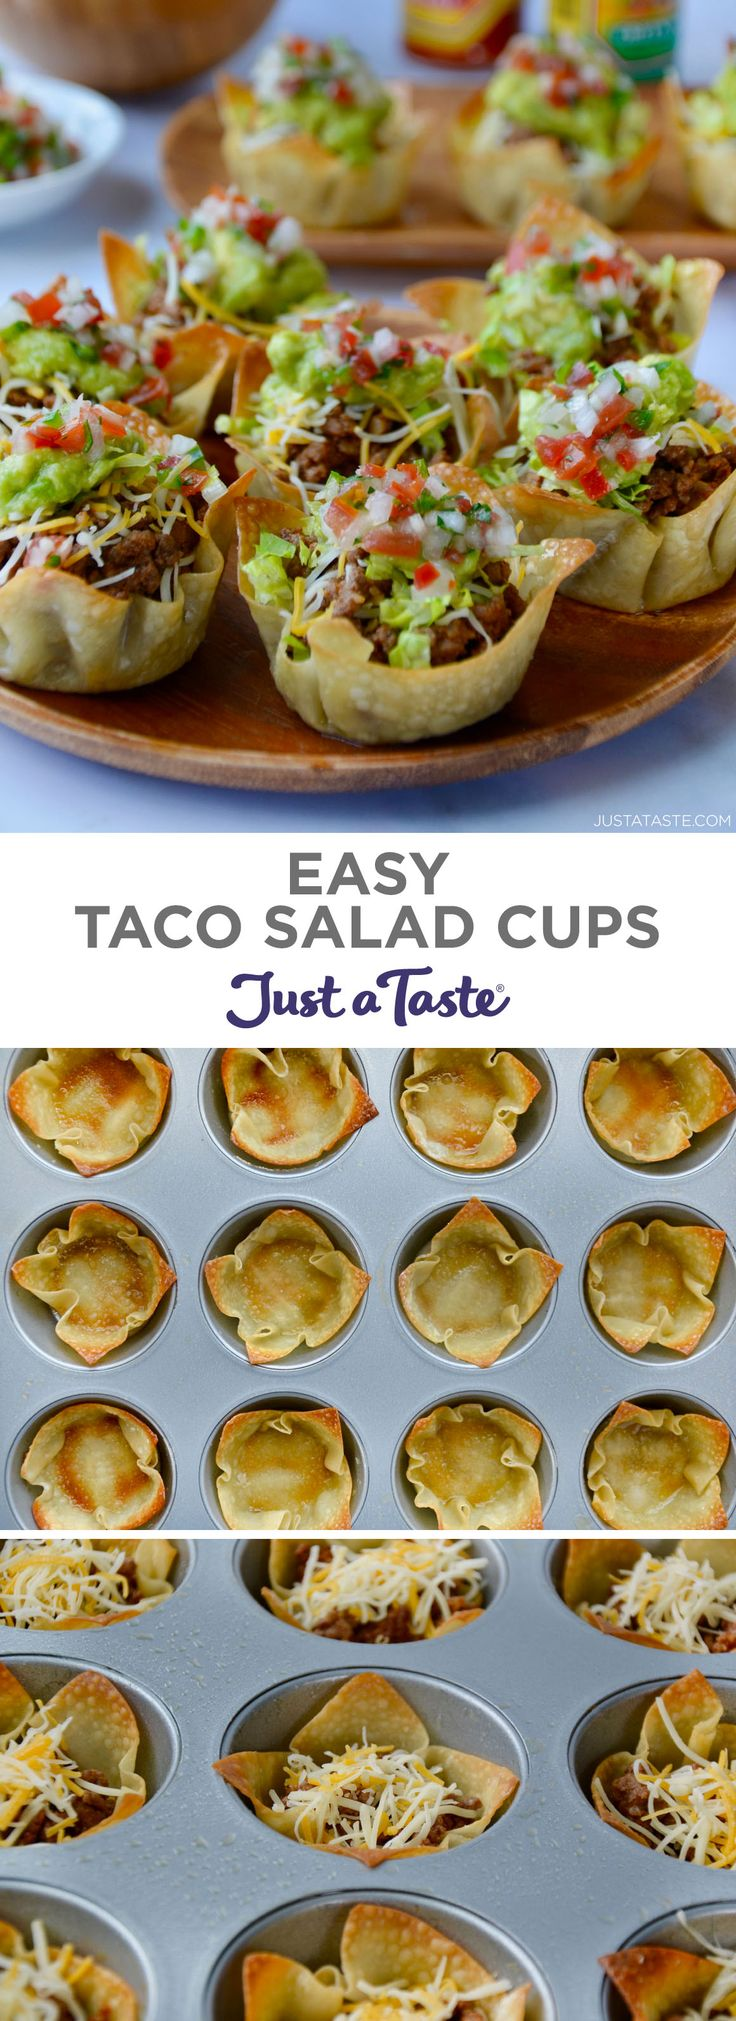 Easy Taco Salad Cups are the perfect party food! They're finger-friendly, can be…